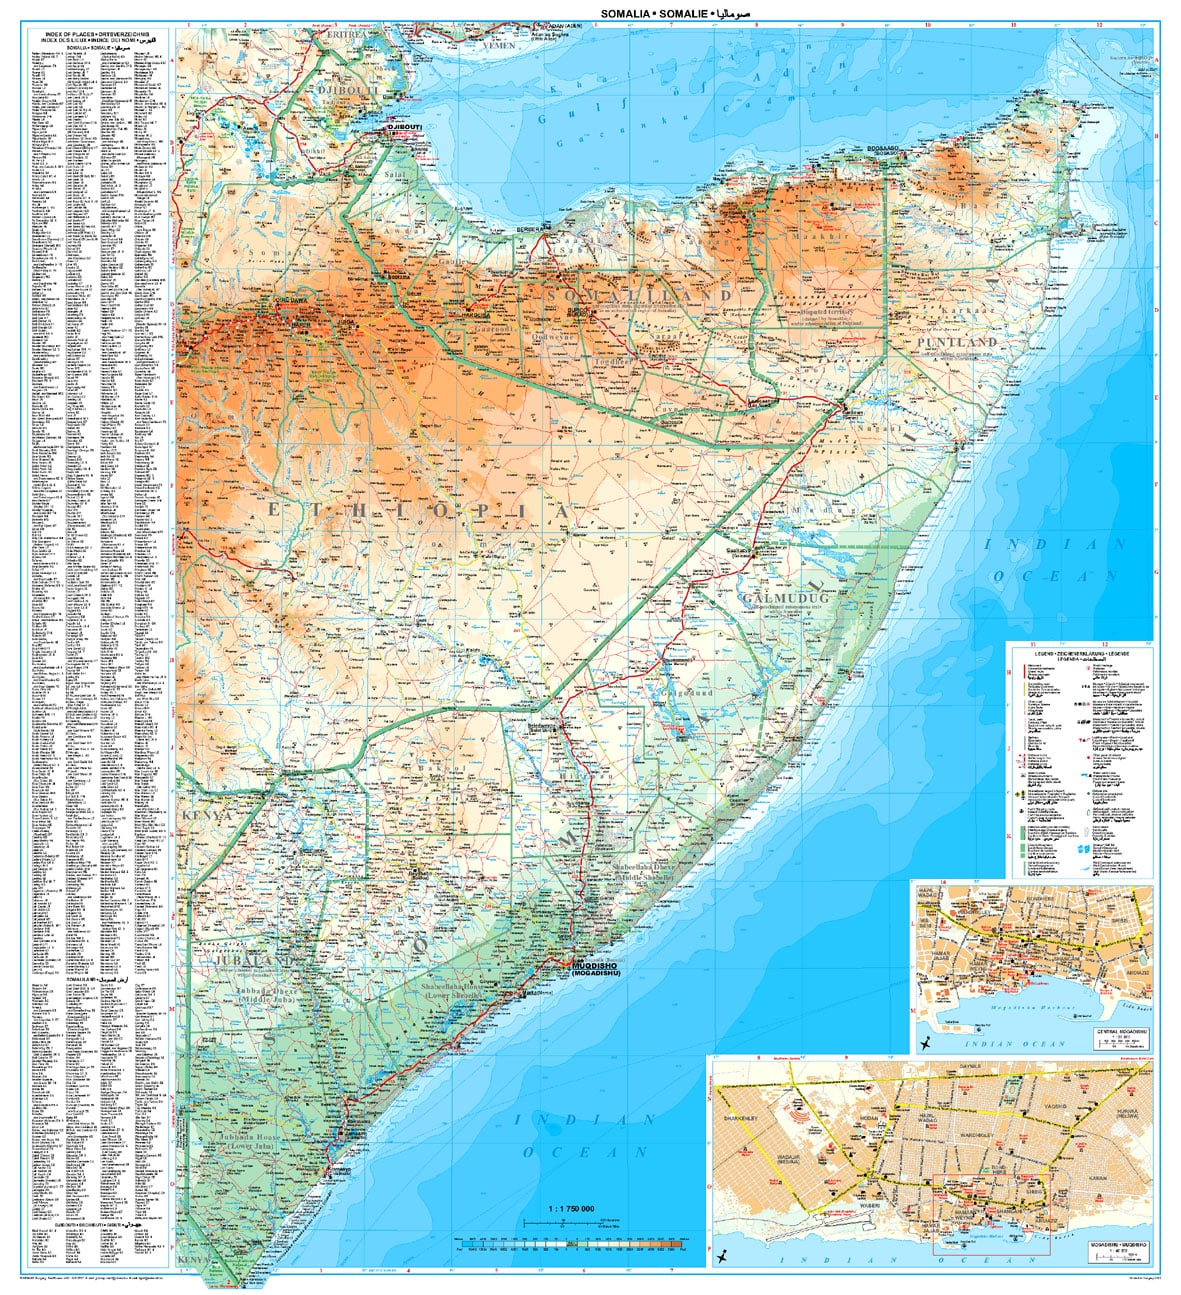 Somalia Wall Map 94 x 86cm